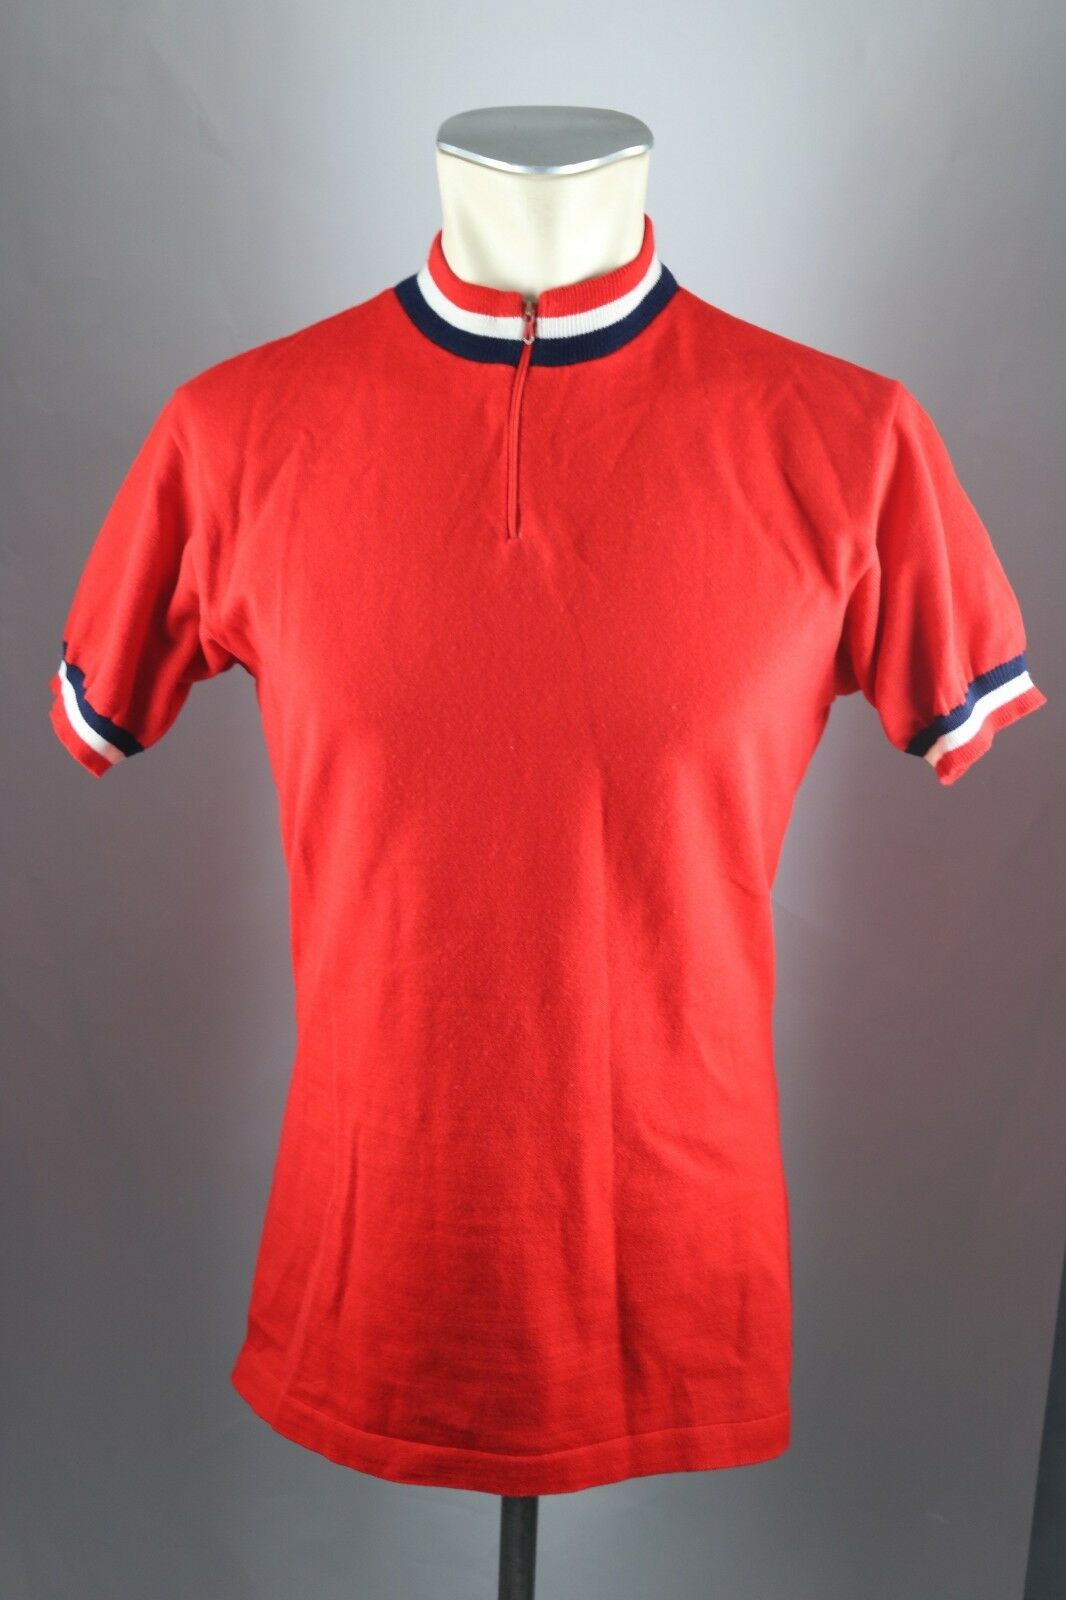 Vintage Radtrikot 70er 80er red Gr.  M 52cm cycling jersey Acrylic Wool Shirt F3  best prices and freshest styles